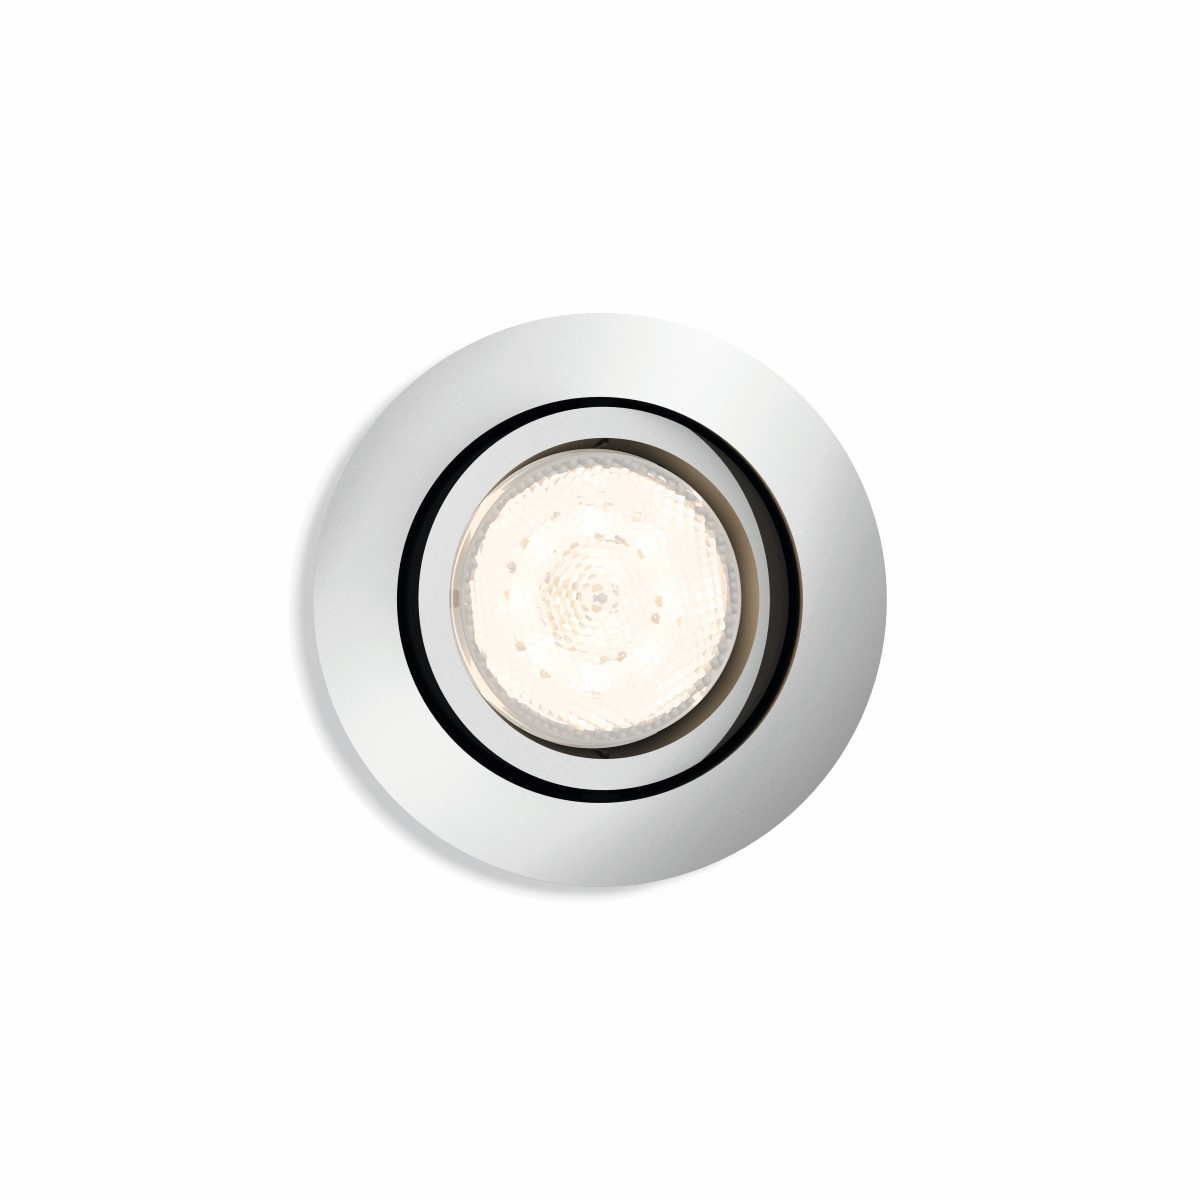 Philips Lighting Shellbark 5020111P0 LED-inbouwlamp 4.5 W Warm-wit Chroom